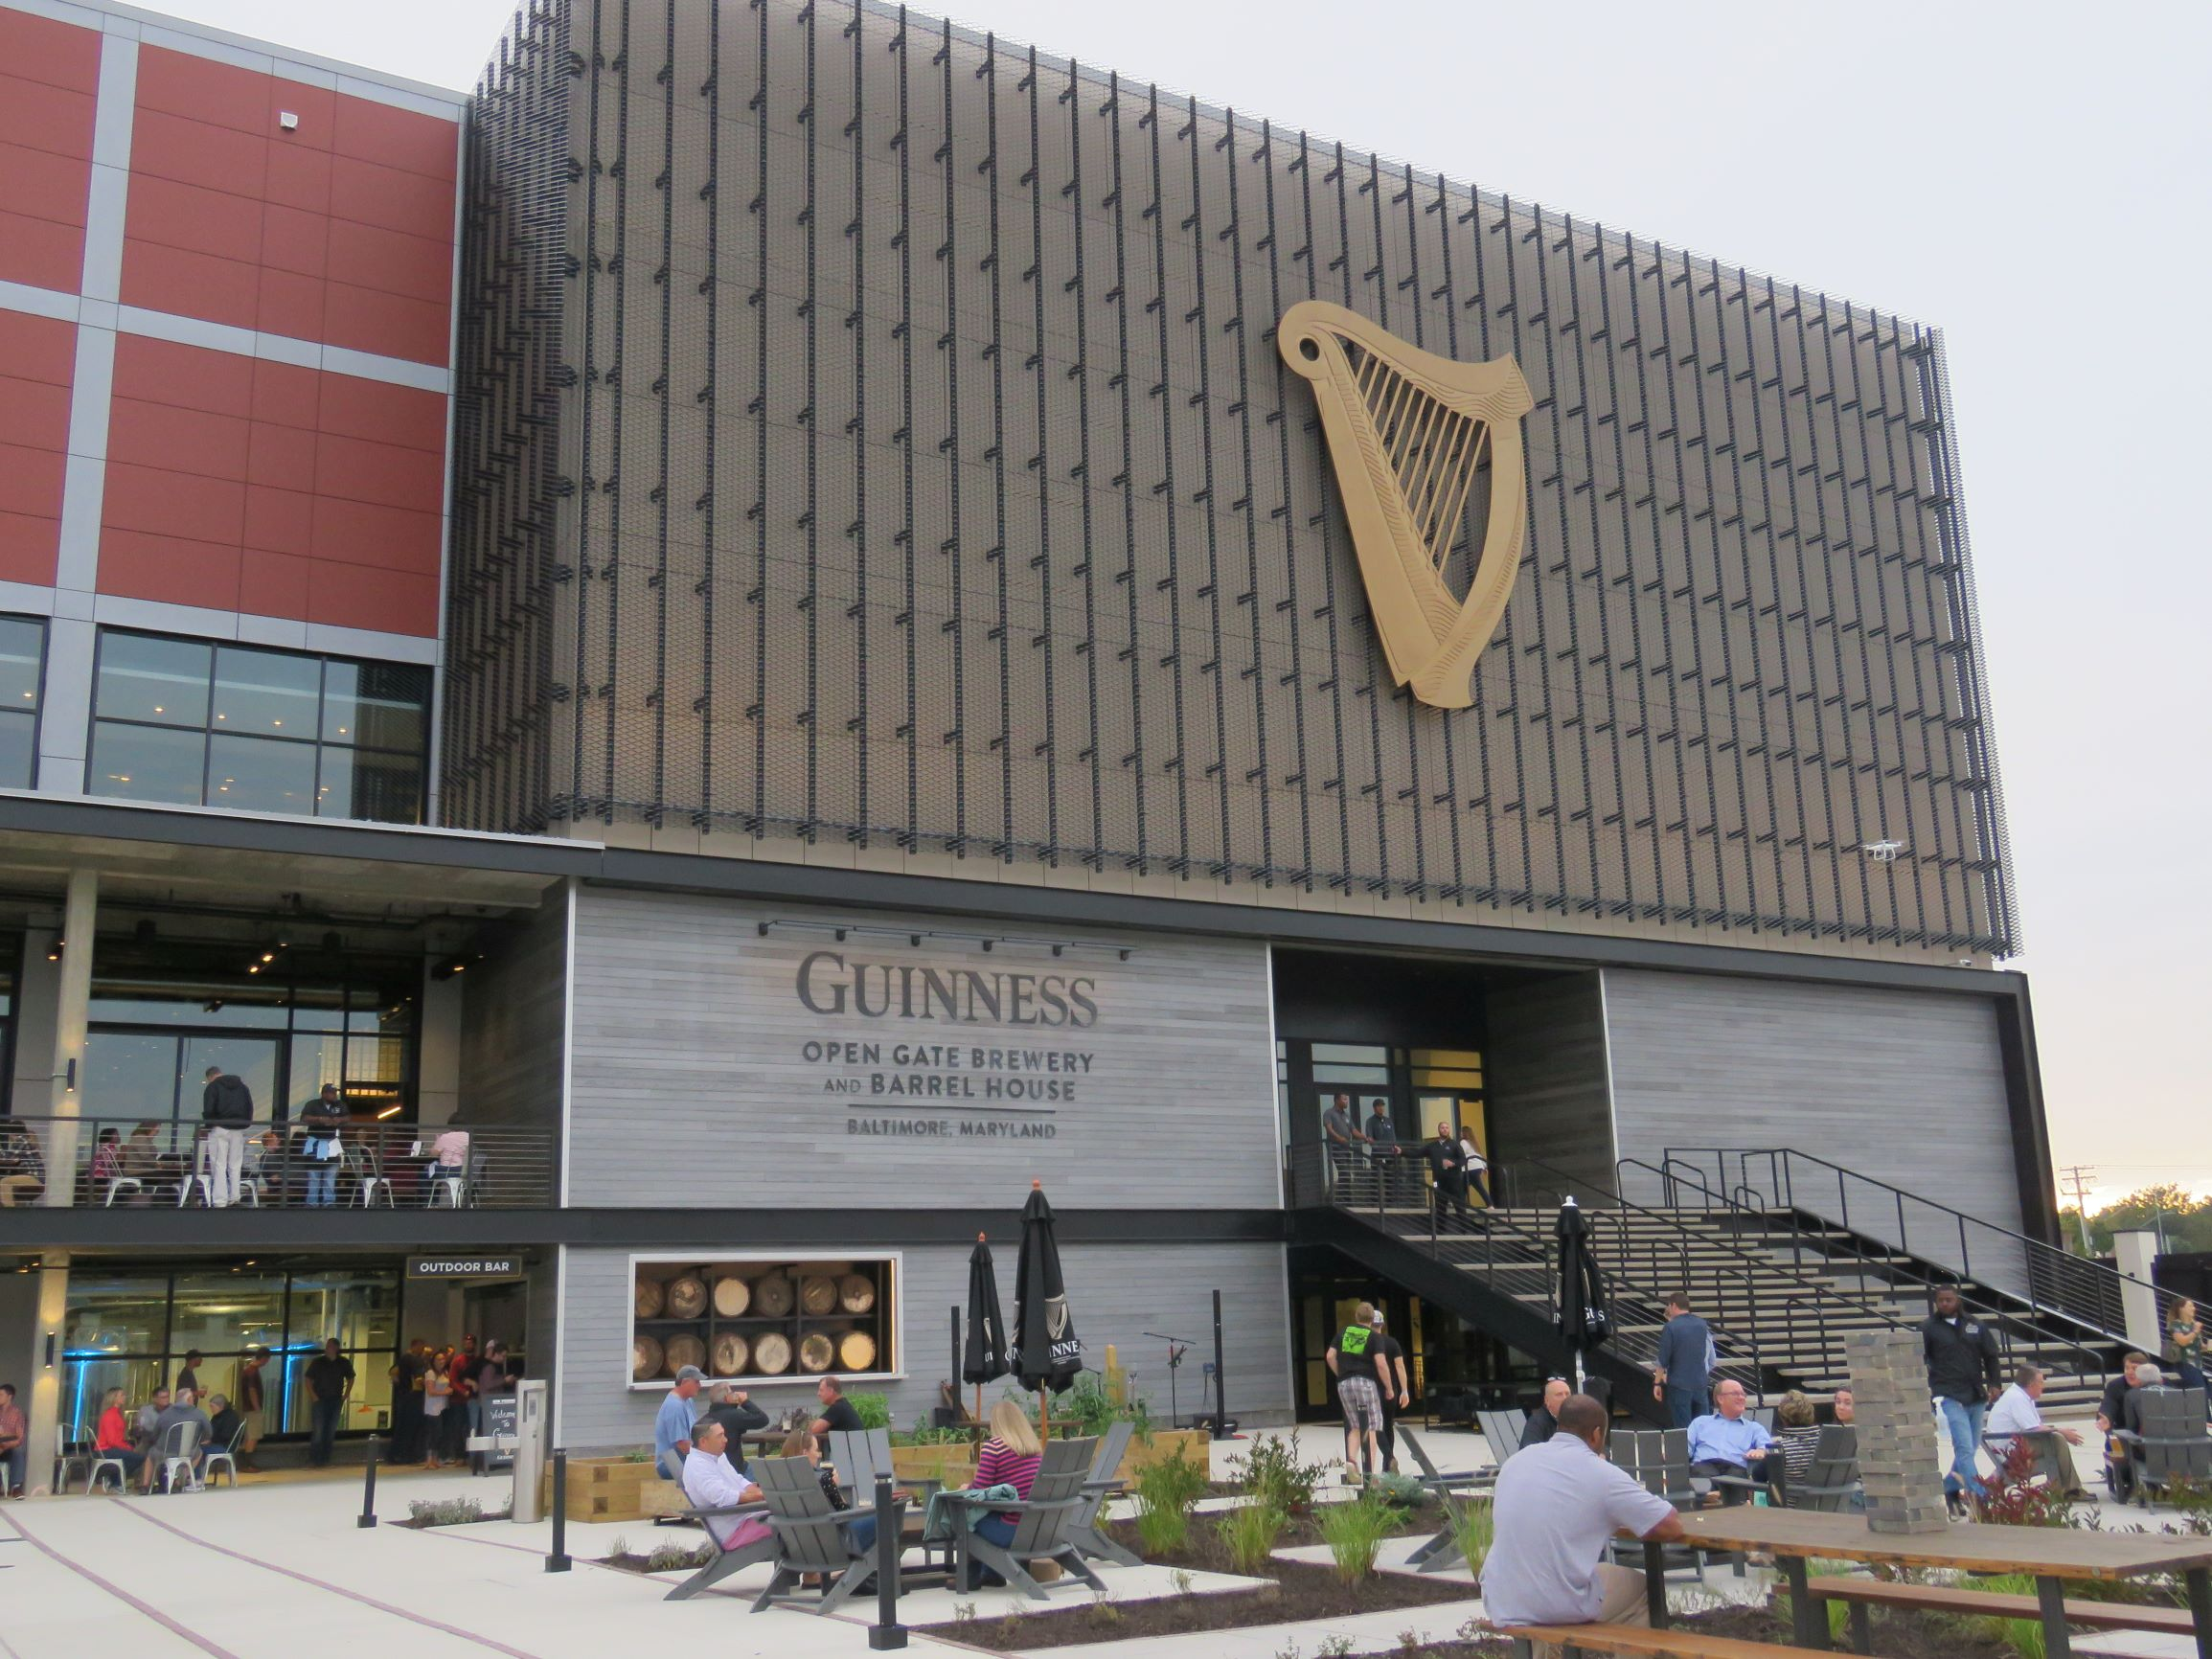 Guinness in America - in Baltimore, sort of.